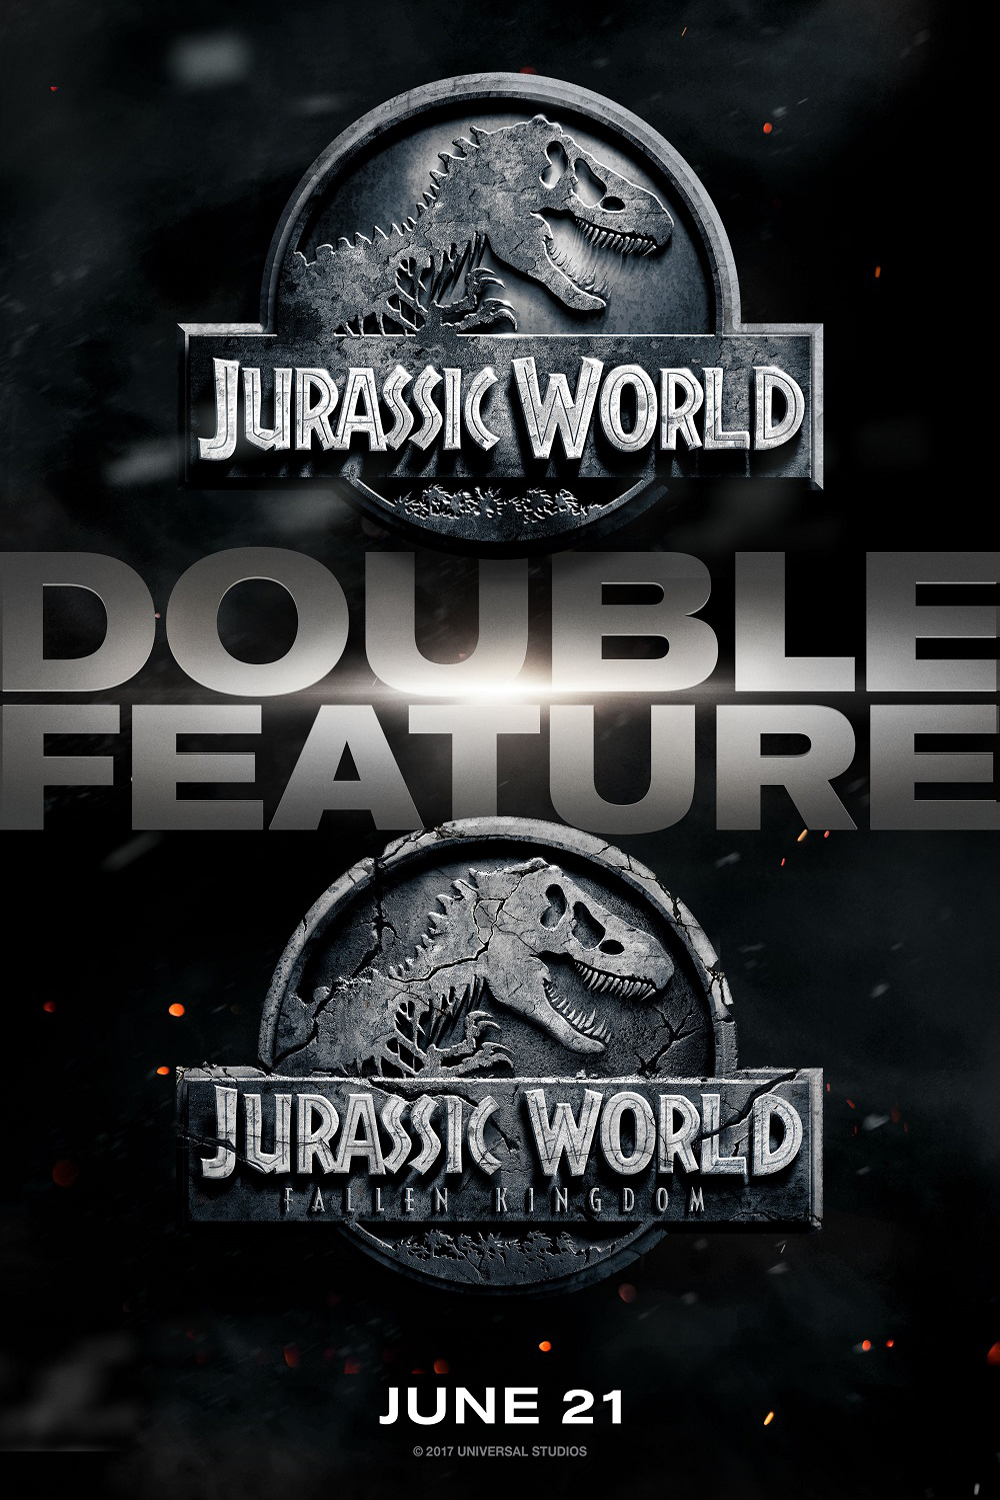 Poster for Jurassic World Double Feature